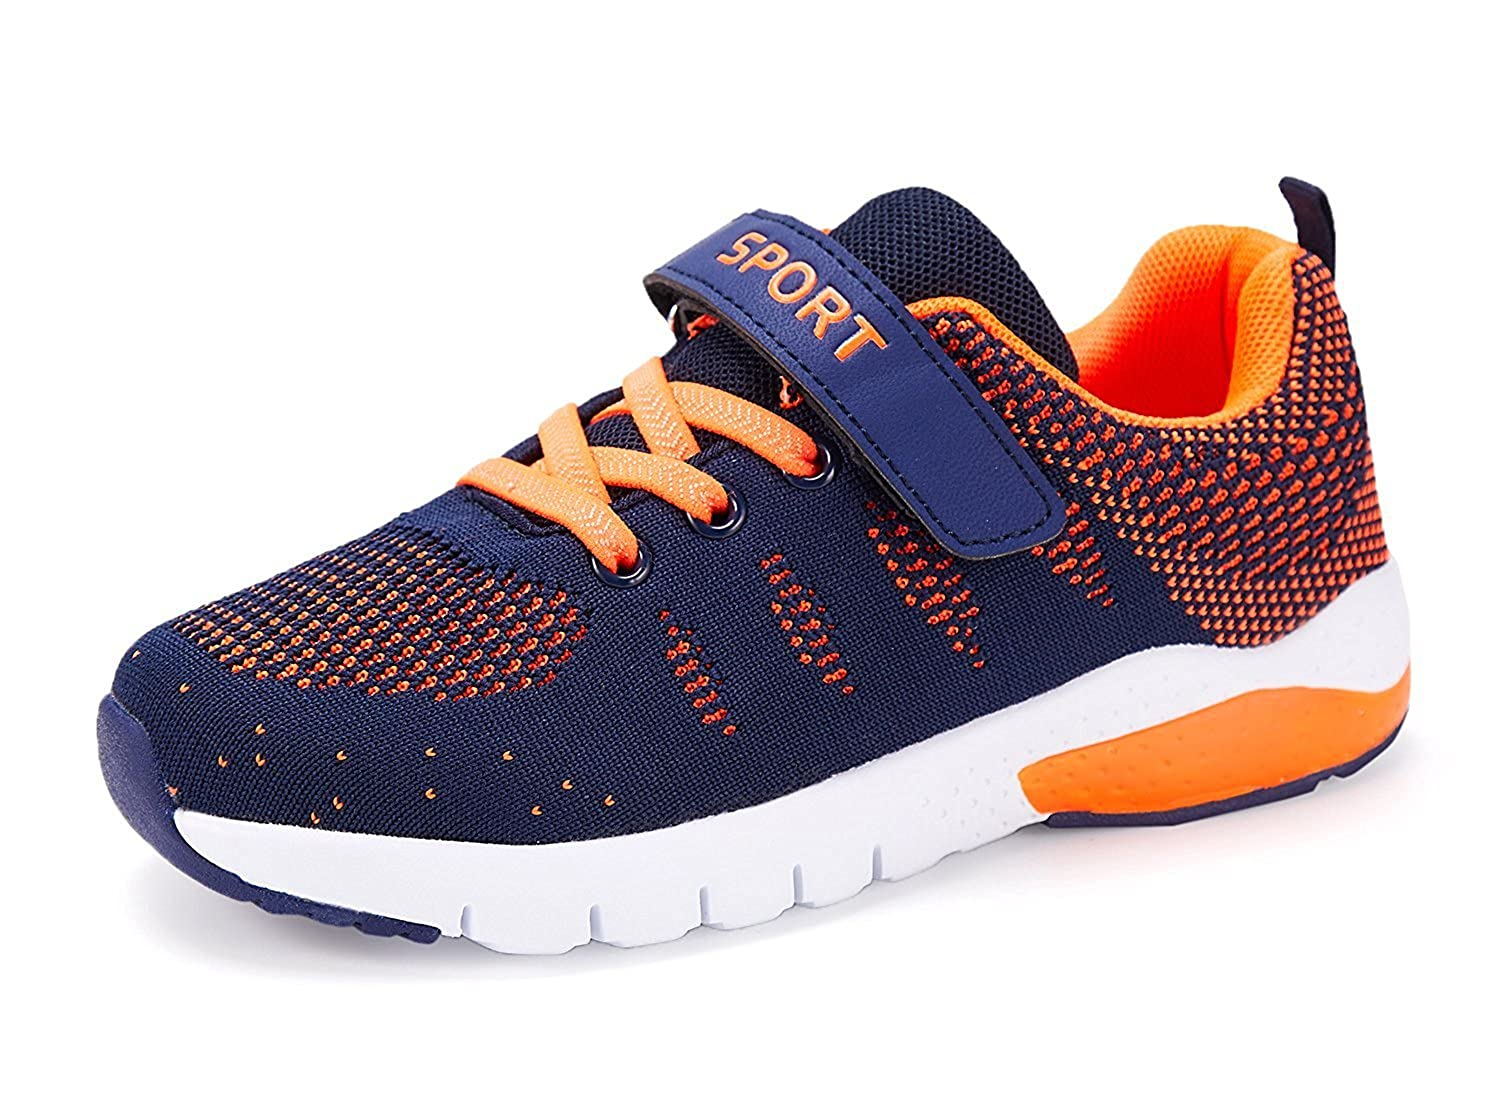 newest 96793 6daa3 MAYZERO Kids Tennis Shoes Breathable Athletic Shoes Lightweight Walking  Running Shoes Fashion Sneakers for Boys and Girls Orange Size  M US Big Kid   ...